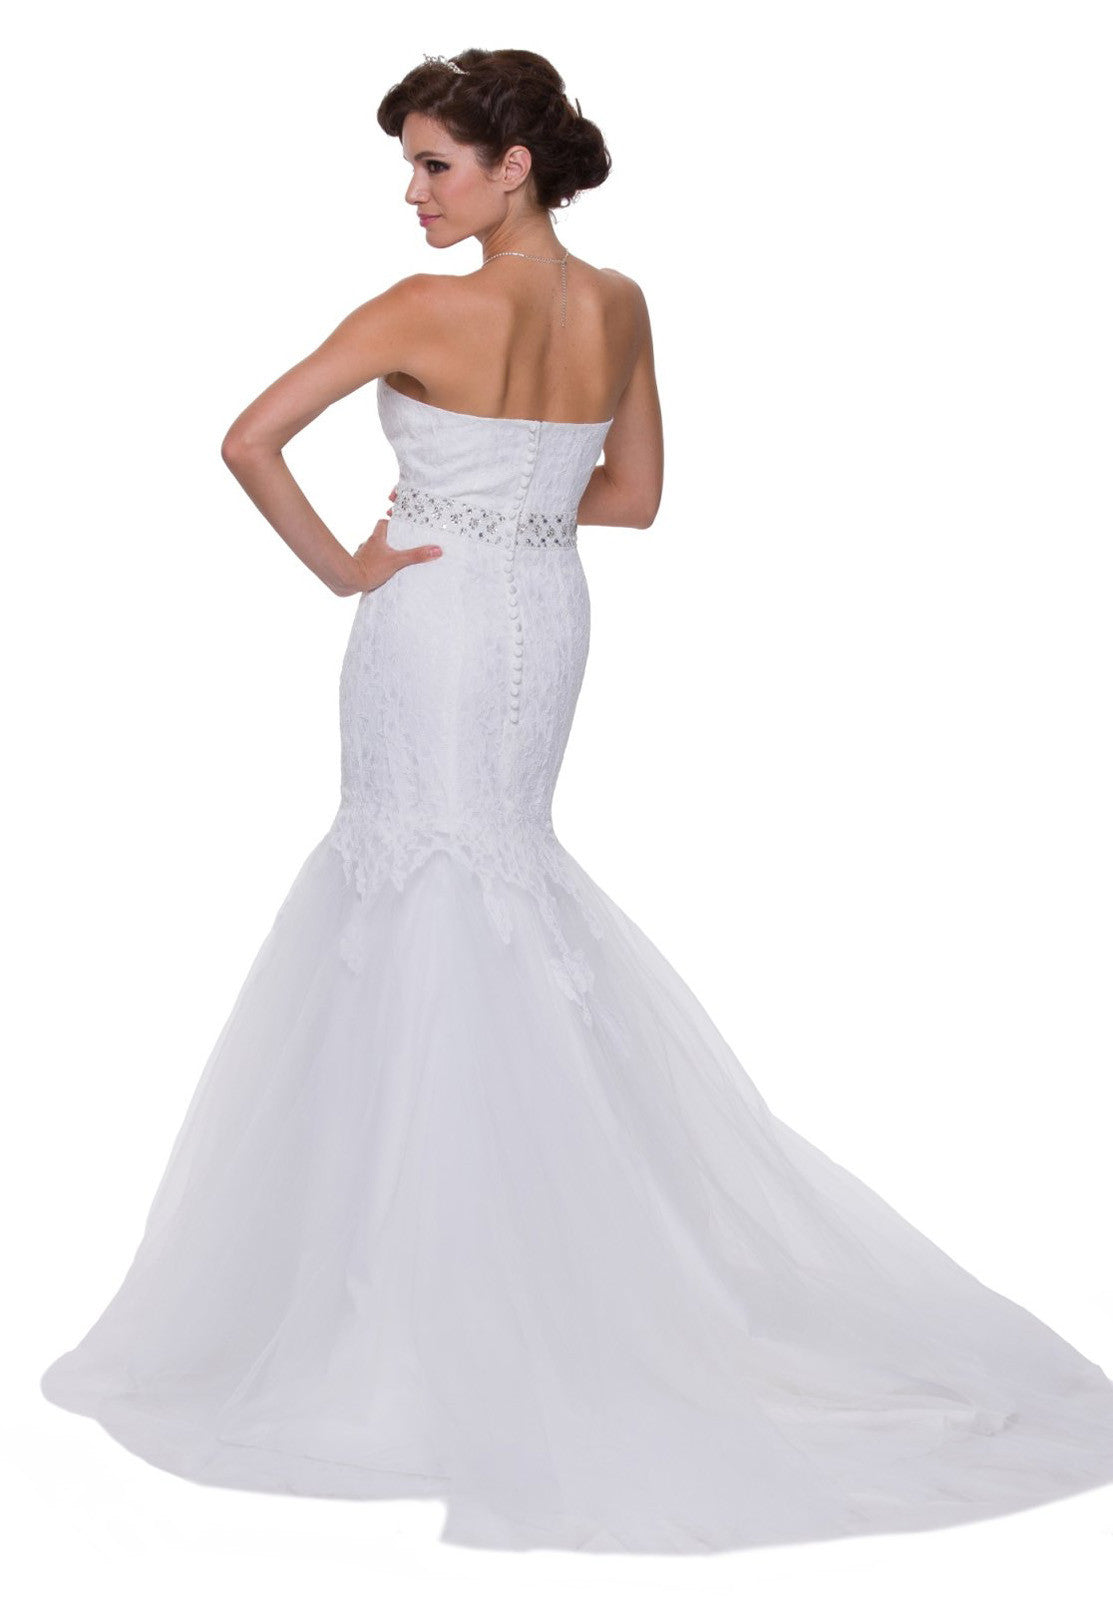 Strapless White Lace Wedding Dress Tulle Skirt Sweetheart Neck Gown